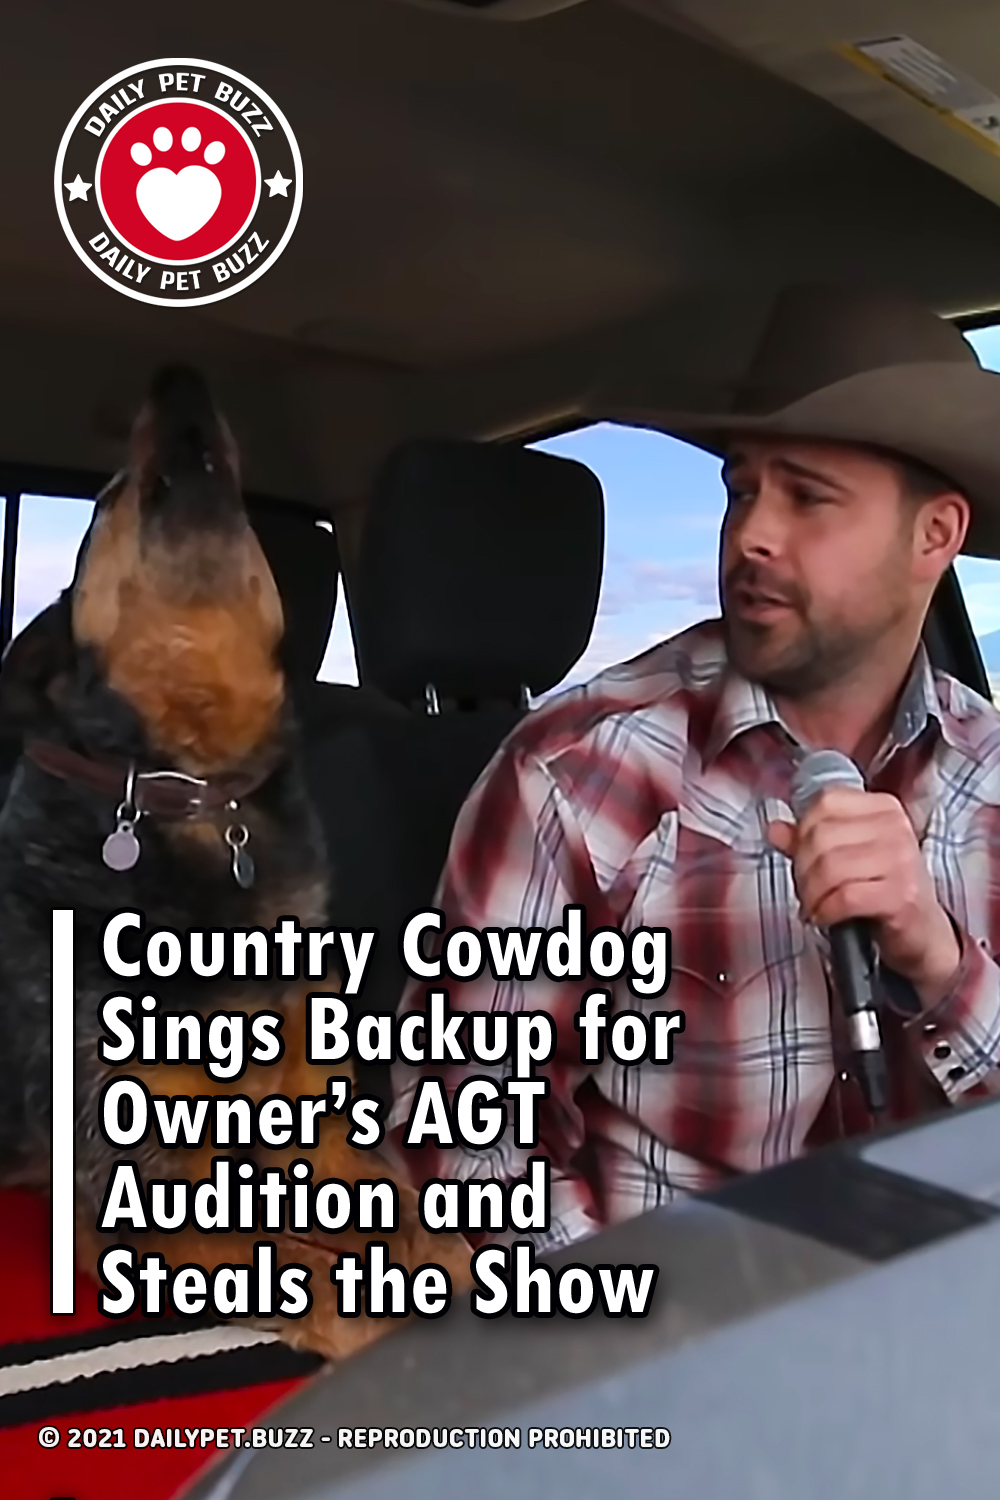 Country Cowdog Sings Backup for Owner's AGT Audition and Steals the Show